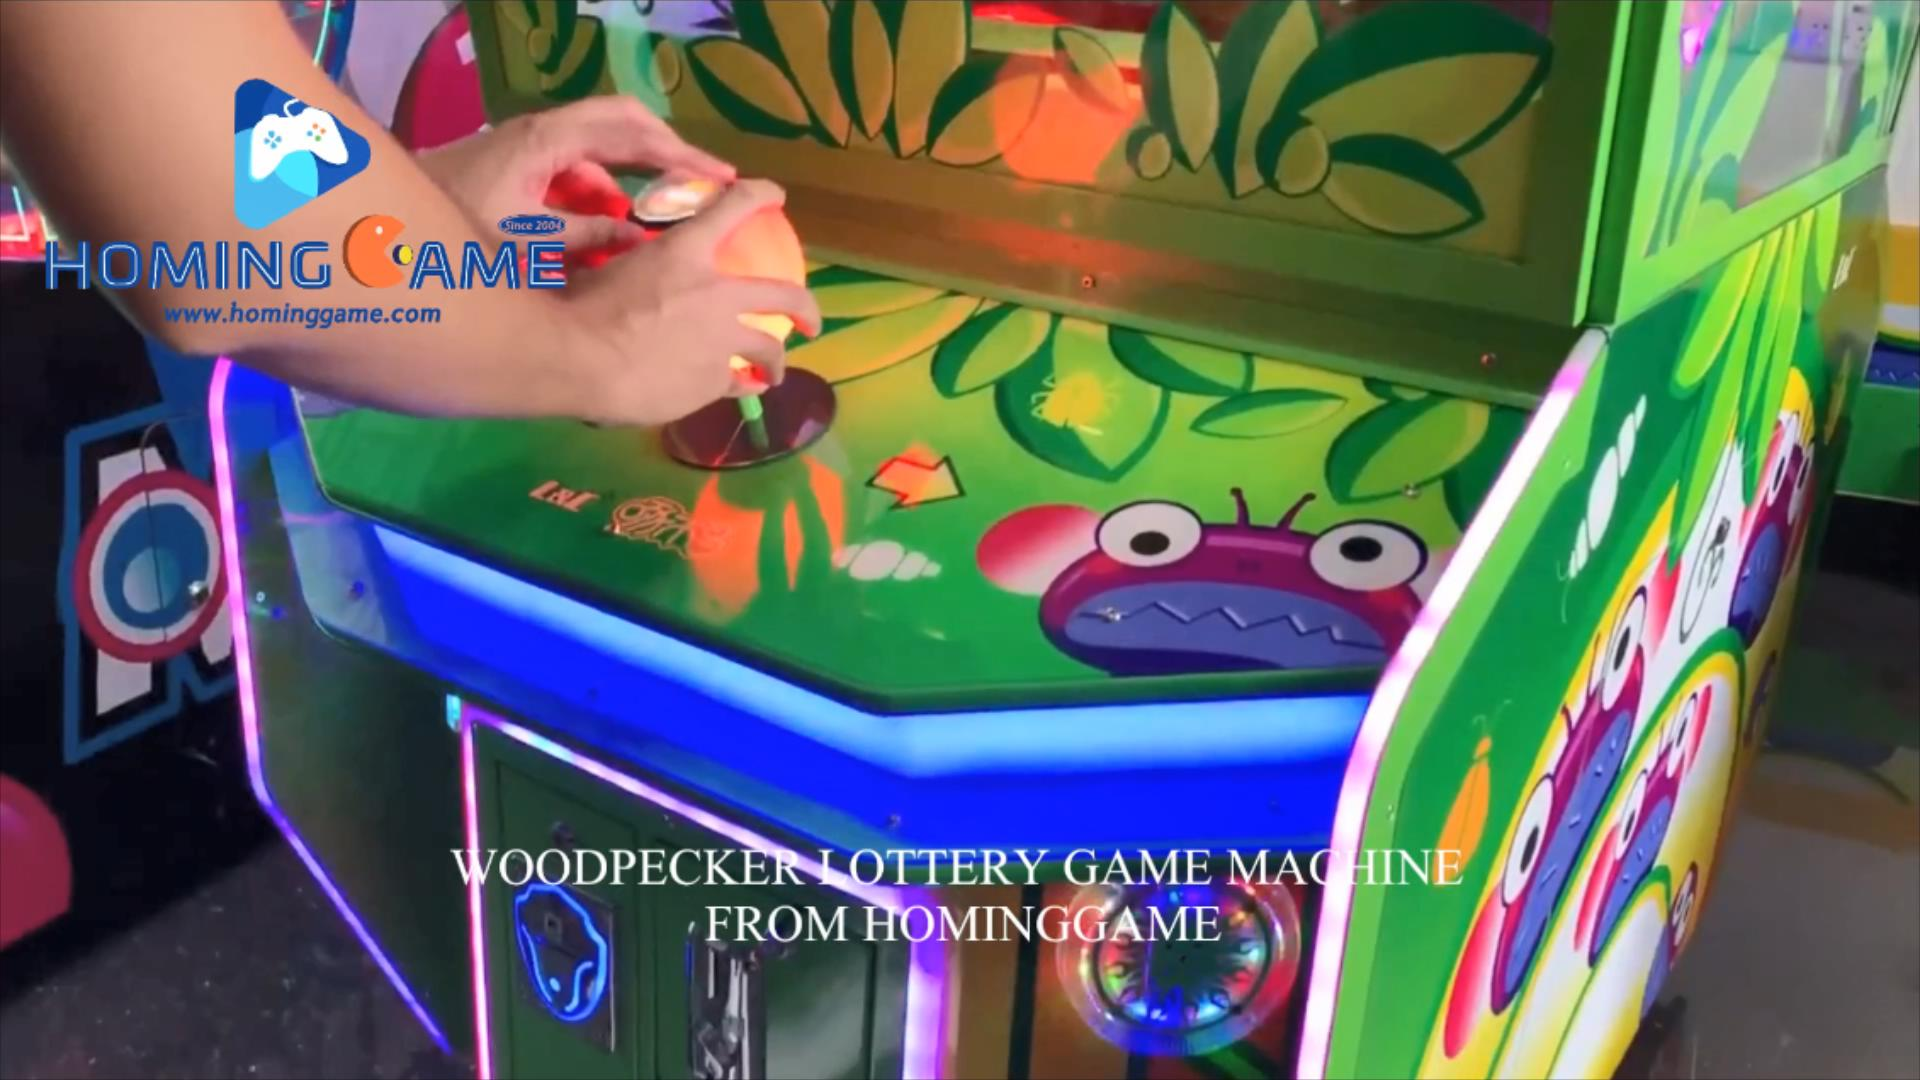 2020 December HomingGame New Released Coin Operated Lottery Game WoodPecker Redemption Game Machine(Order Call Whatsapp:+8618688409495),woodpecker lottery game machine,woodpecker redemption game machine,redemption game machine,lottery game machine,kids game machine,lottery redemption game machine,kids lottery game machine,game machine,arcade game machine,coin operated game machine,indoor game machine,electrical game machine,amsuement park game equipment,game equipment,amusement machine,hominggame,www.gametube.hk